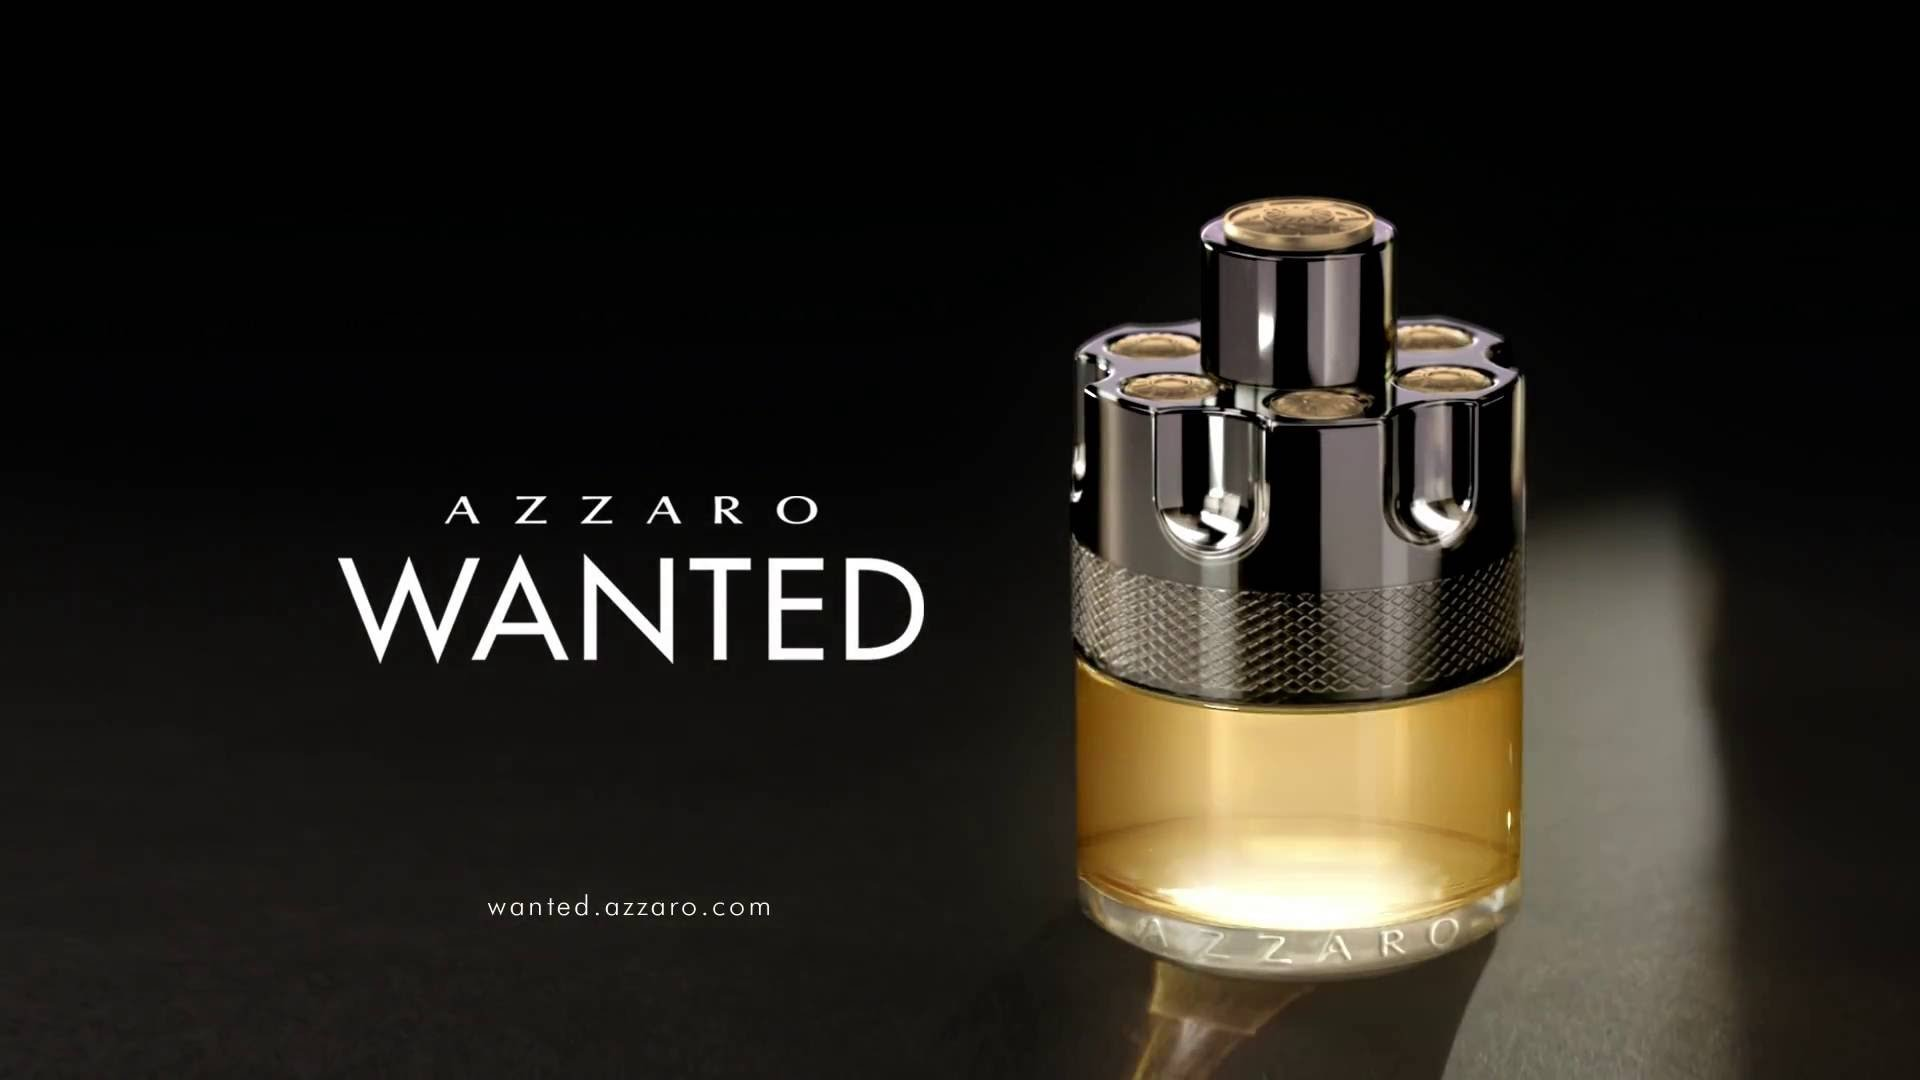 azzaro-wanted-by-night-tonamodaimports